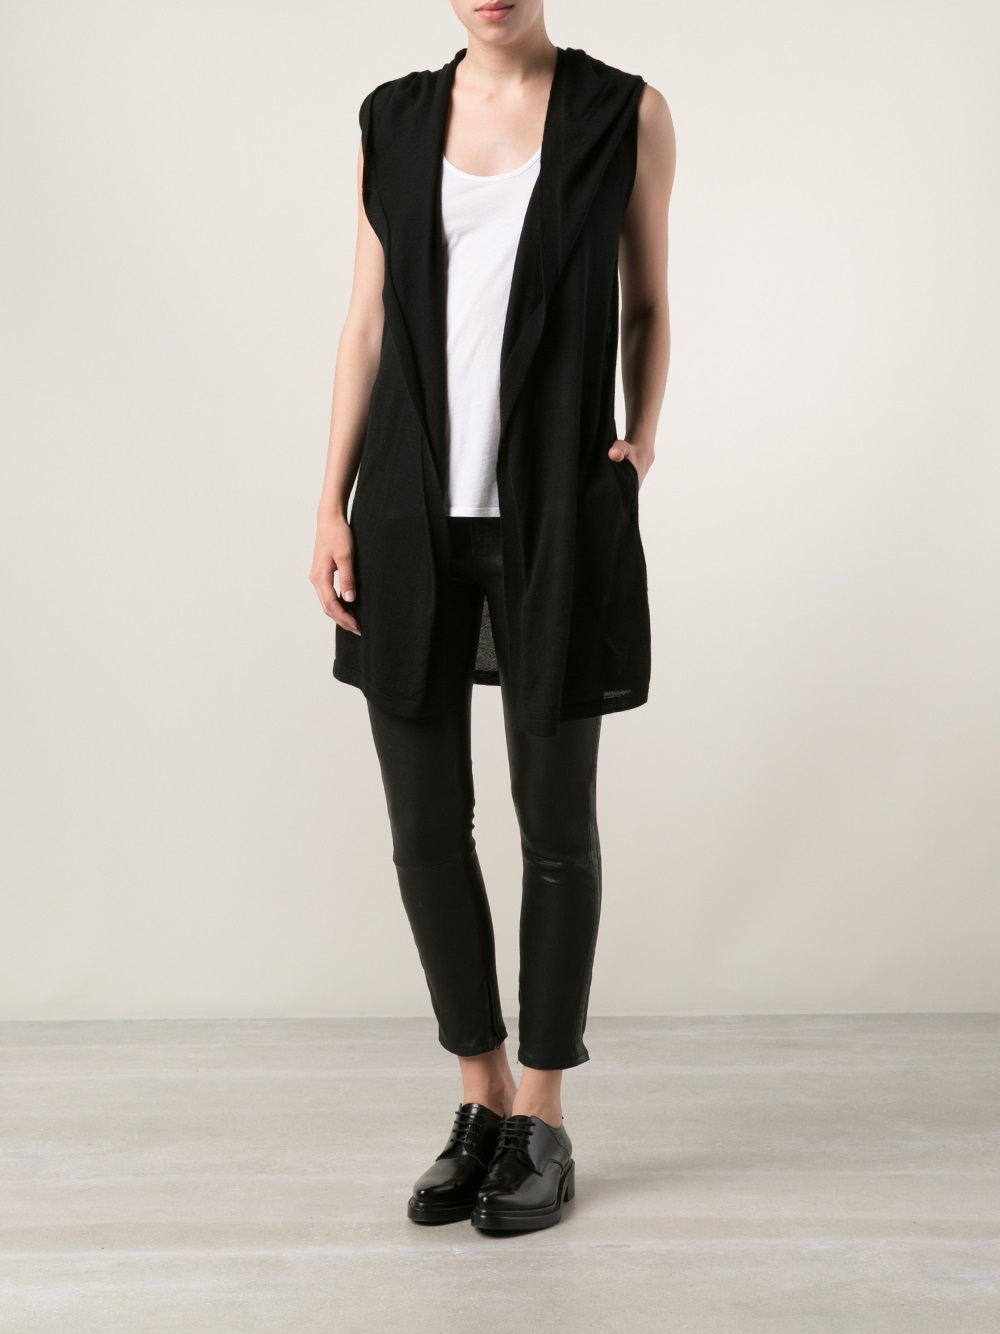 Rick owens Sleeveless Cardigan in Black | Lyst